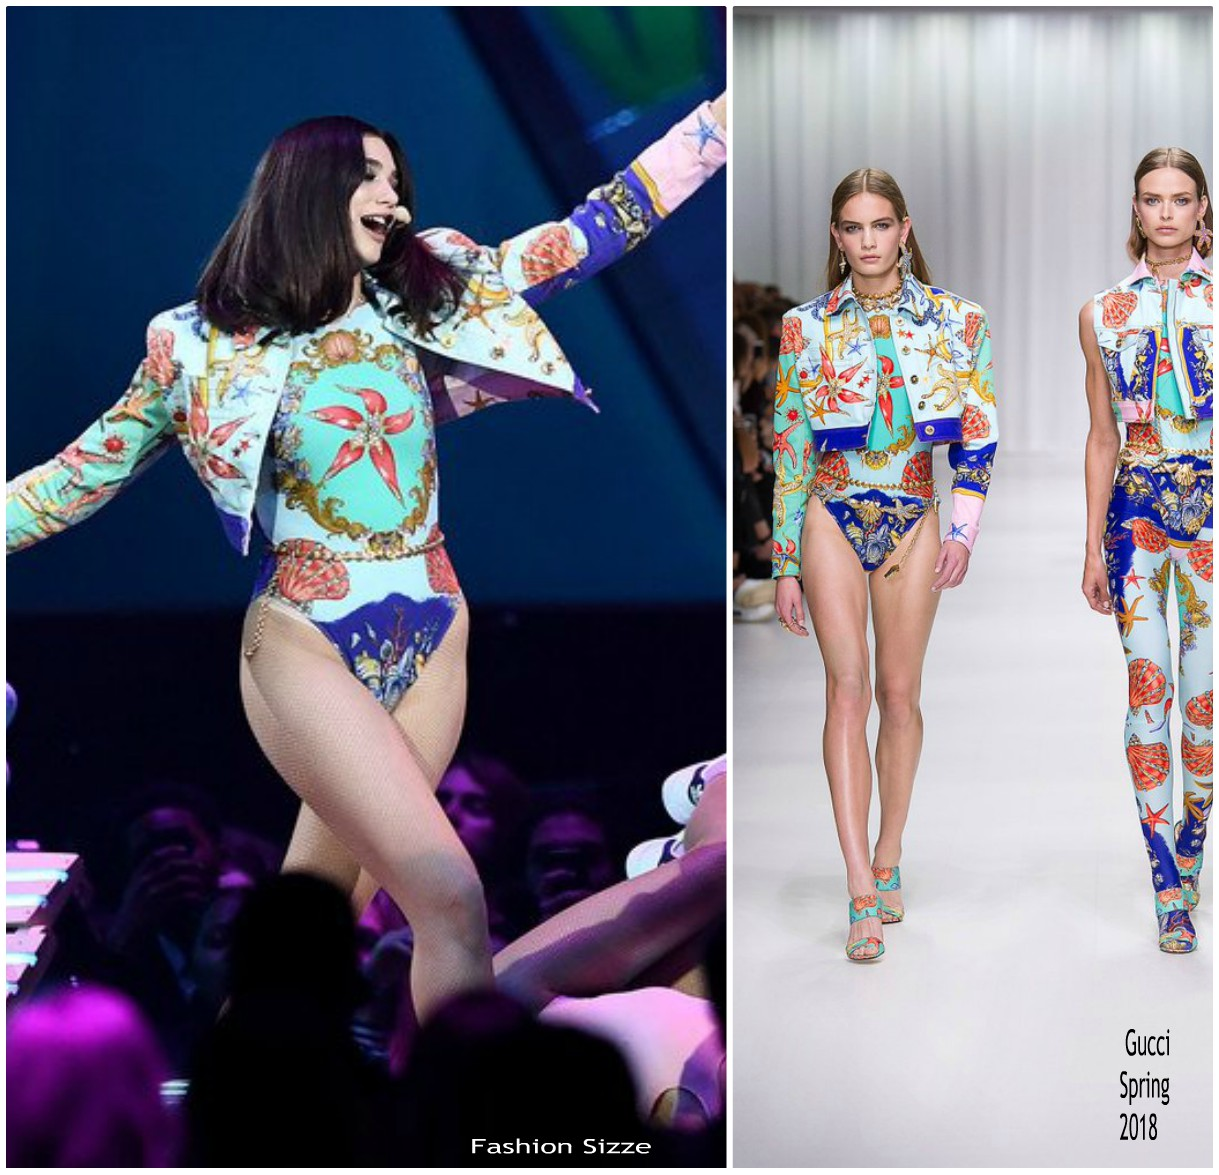 dua-lipa-in-versace-brit-awards-2018-performance